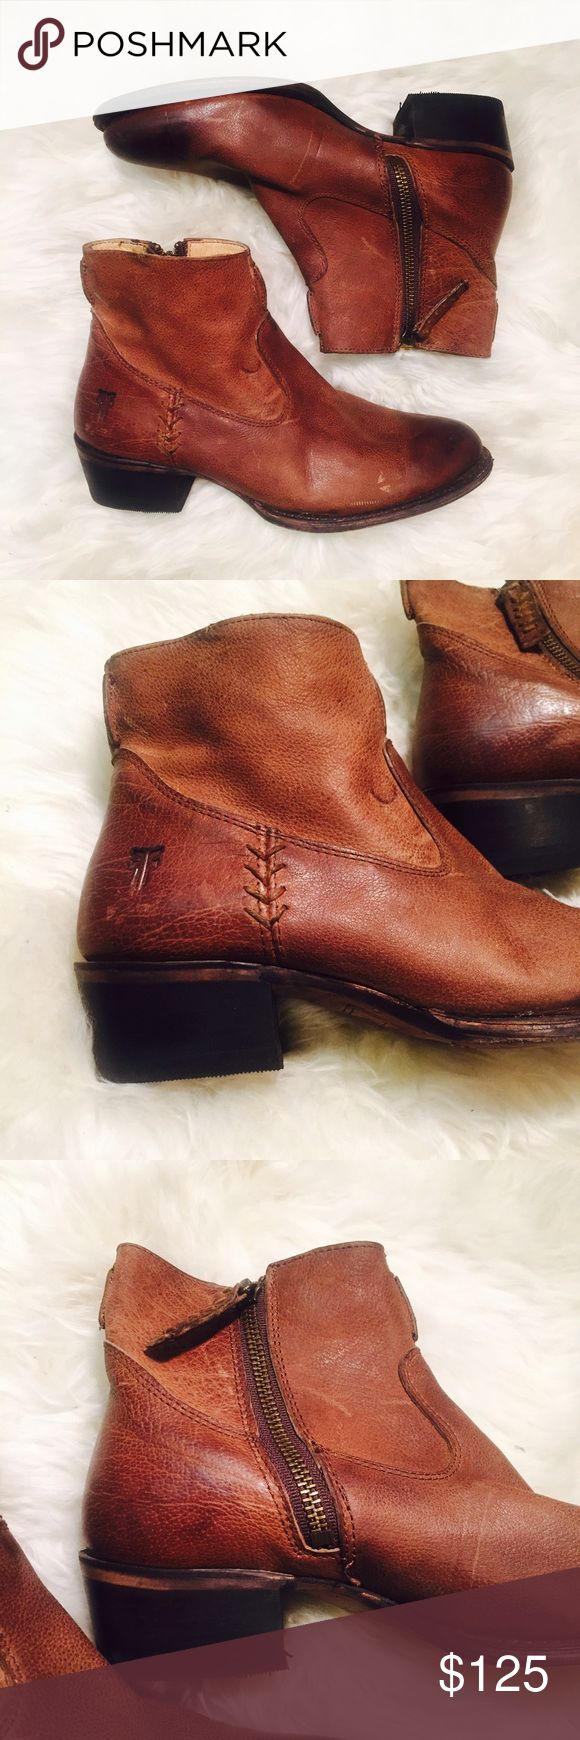 FRYE Bootie Boots Stitch Leather EUC Zip 6 Dark Stunning pair of Frye Booties, EUC : they have been re-soled in one boot and the other is fine, both heels have been professionally replaced (just the rubber bottom). Now perfect! These are a real score! Very little signs of wear Frye Shoes Ankle Boots & Booties